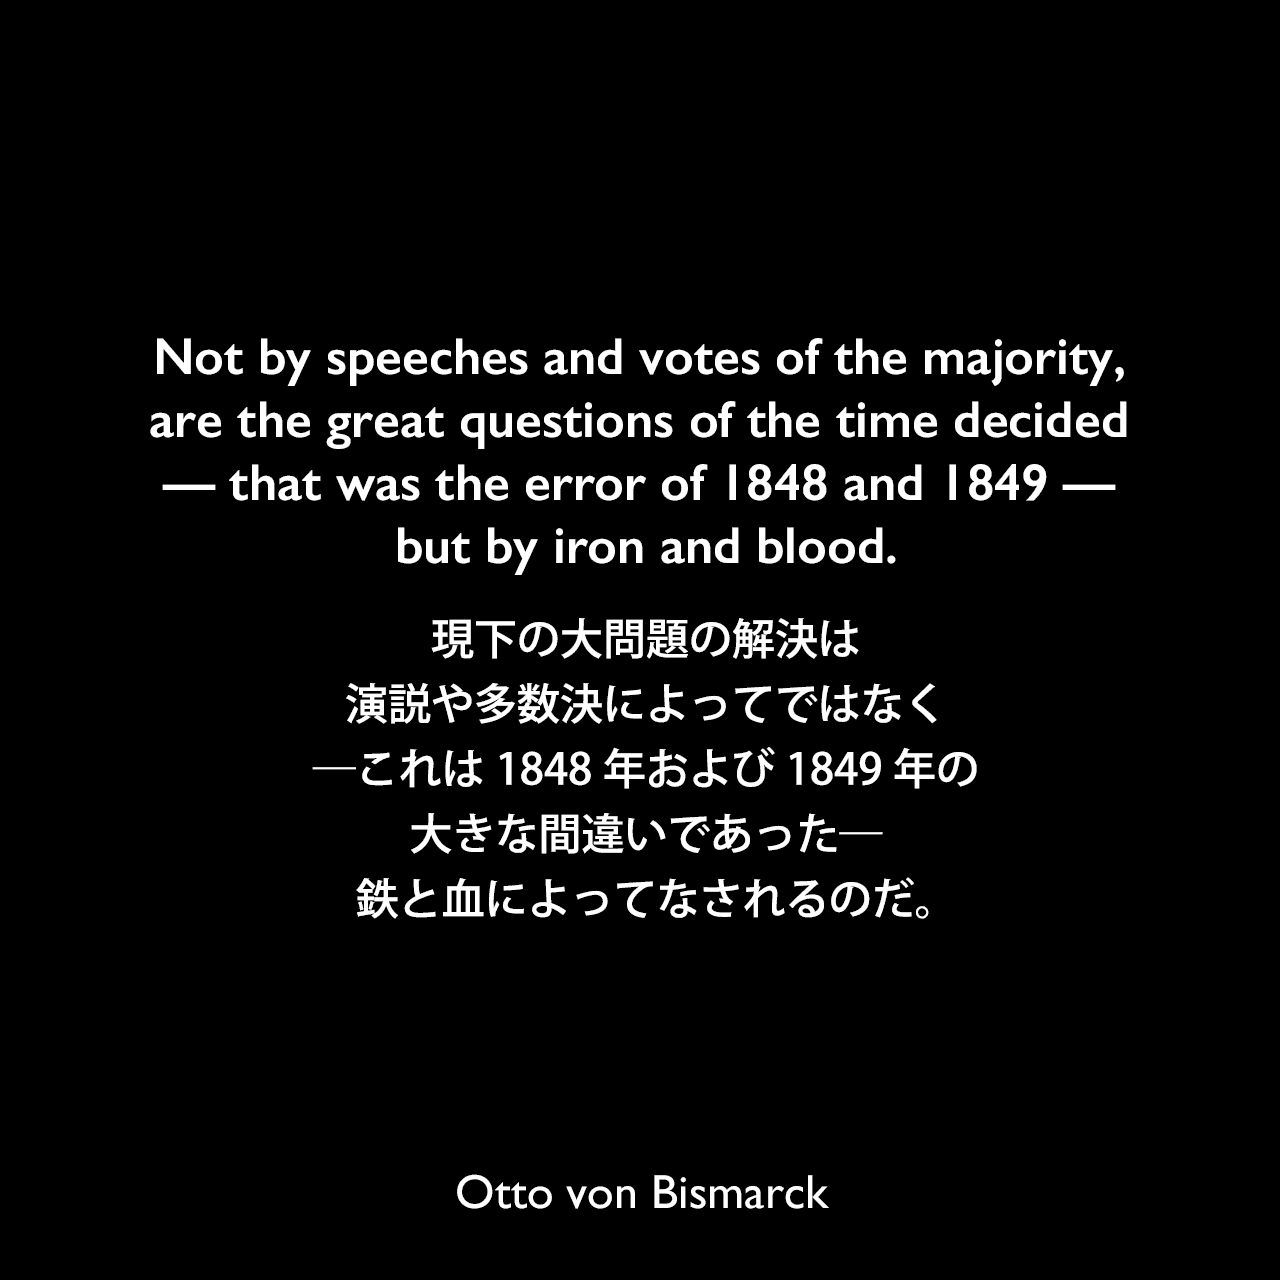 Not by speeches and votes of the majority, are the great questions of the time decided — that was the error of 1848 and 1849 — but by iron and blood.現下の大問題の解決は、演説や多数決によってではなく―これは1848年および1849年の大きな間違いであった―鉄と血によってなされるのだ。Otto von Bismarck